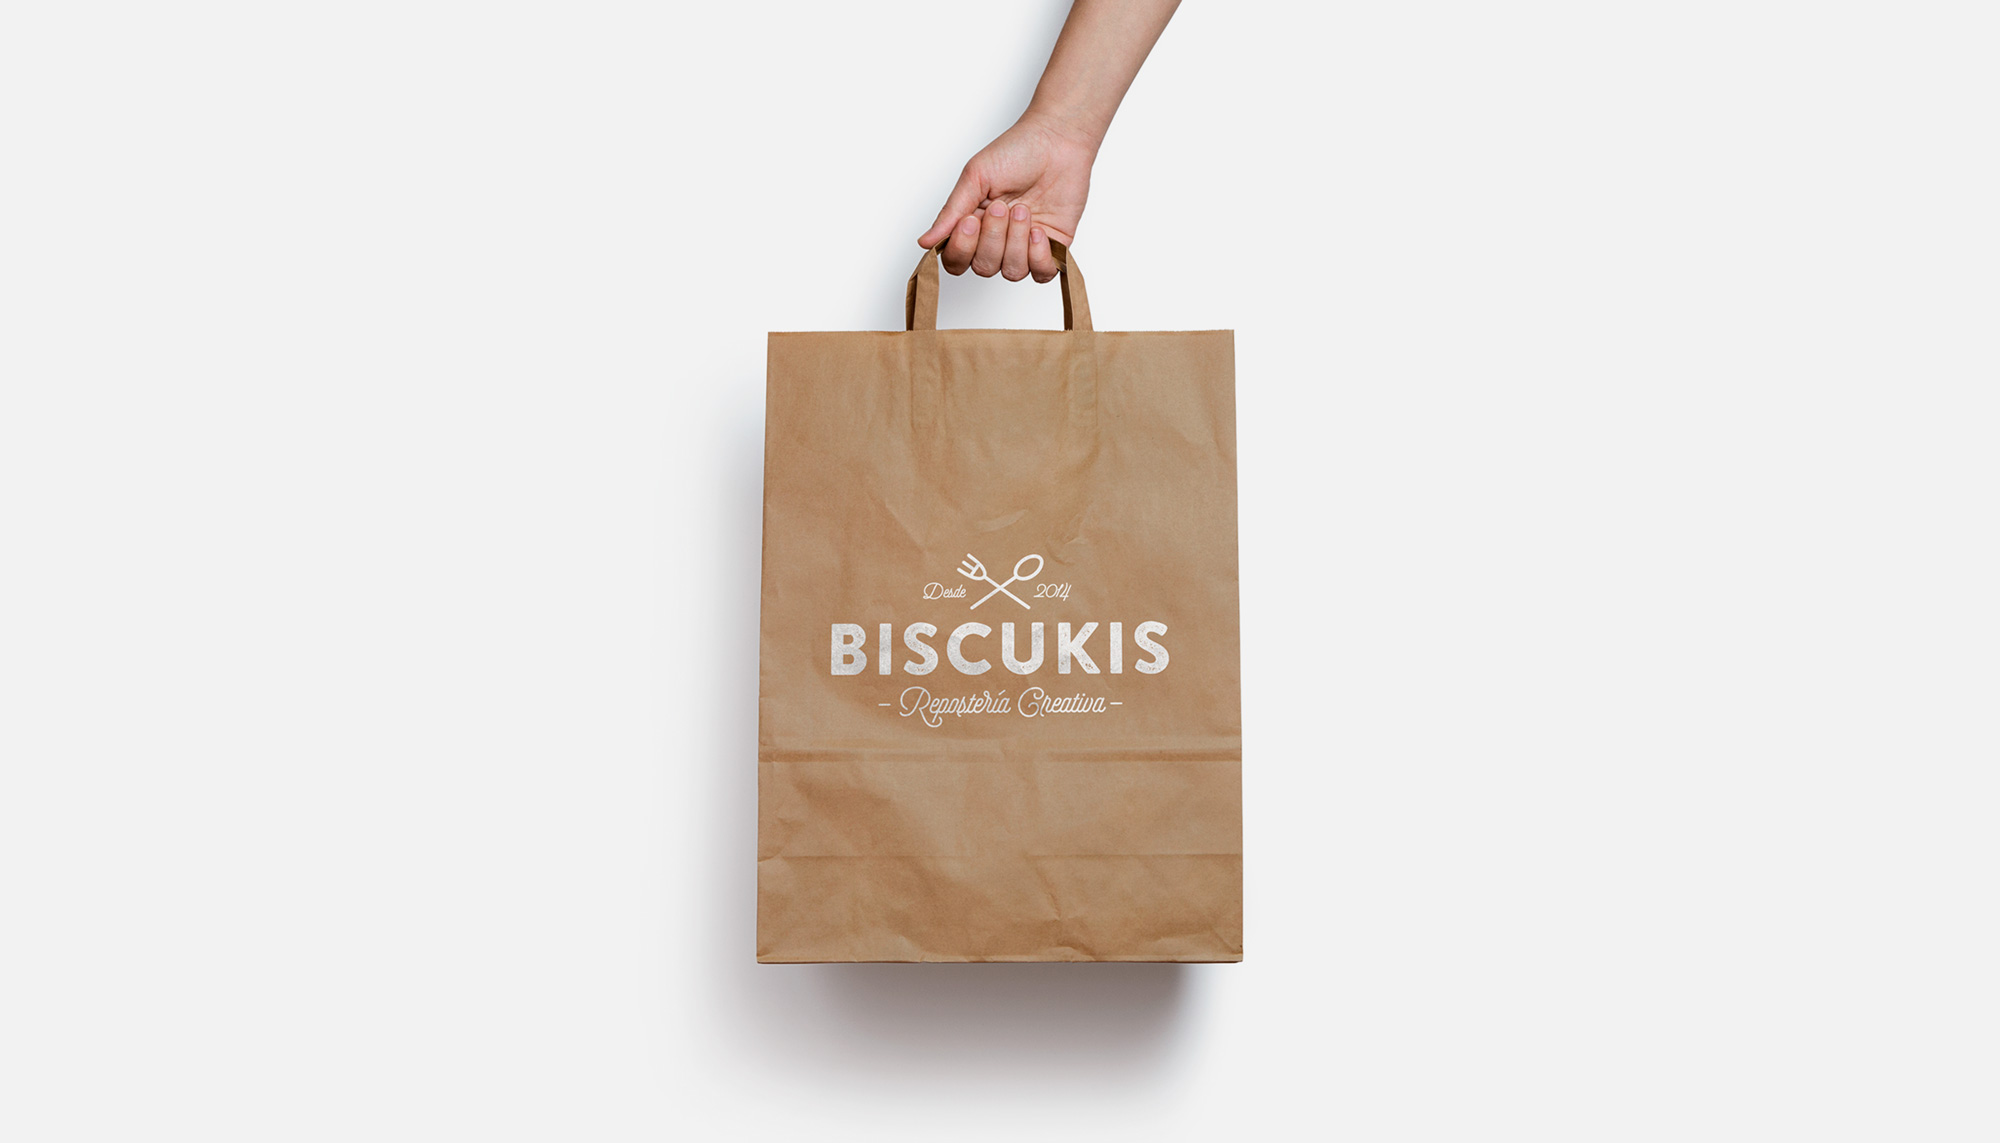 biscukis-02